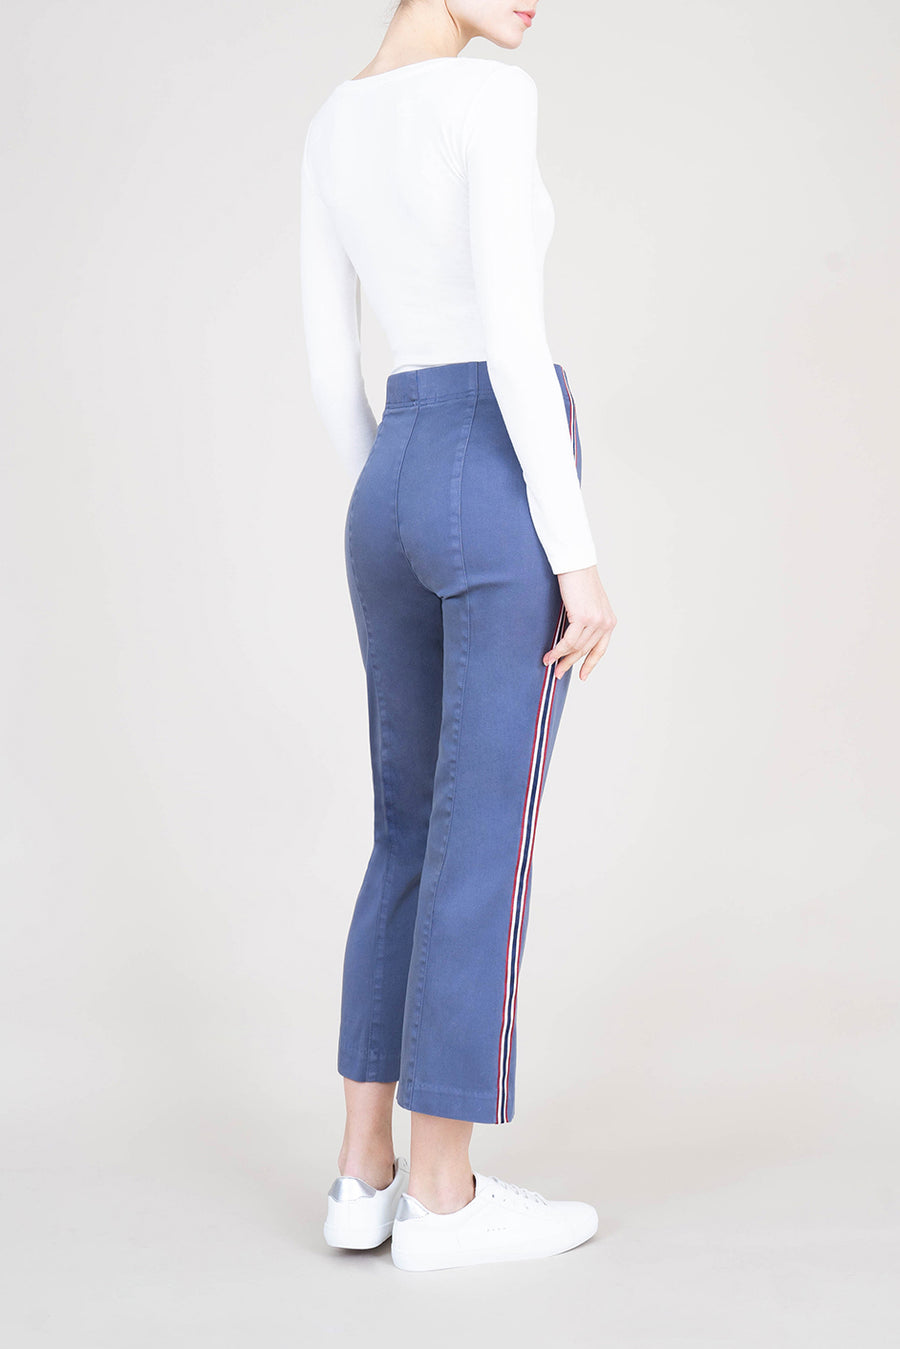 Melanie Pull On Jogger - level99jeans